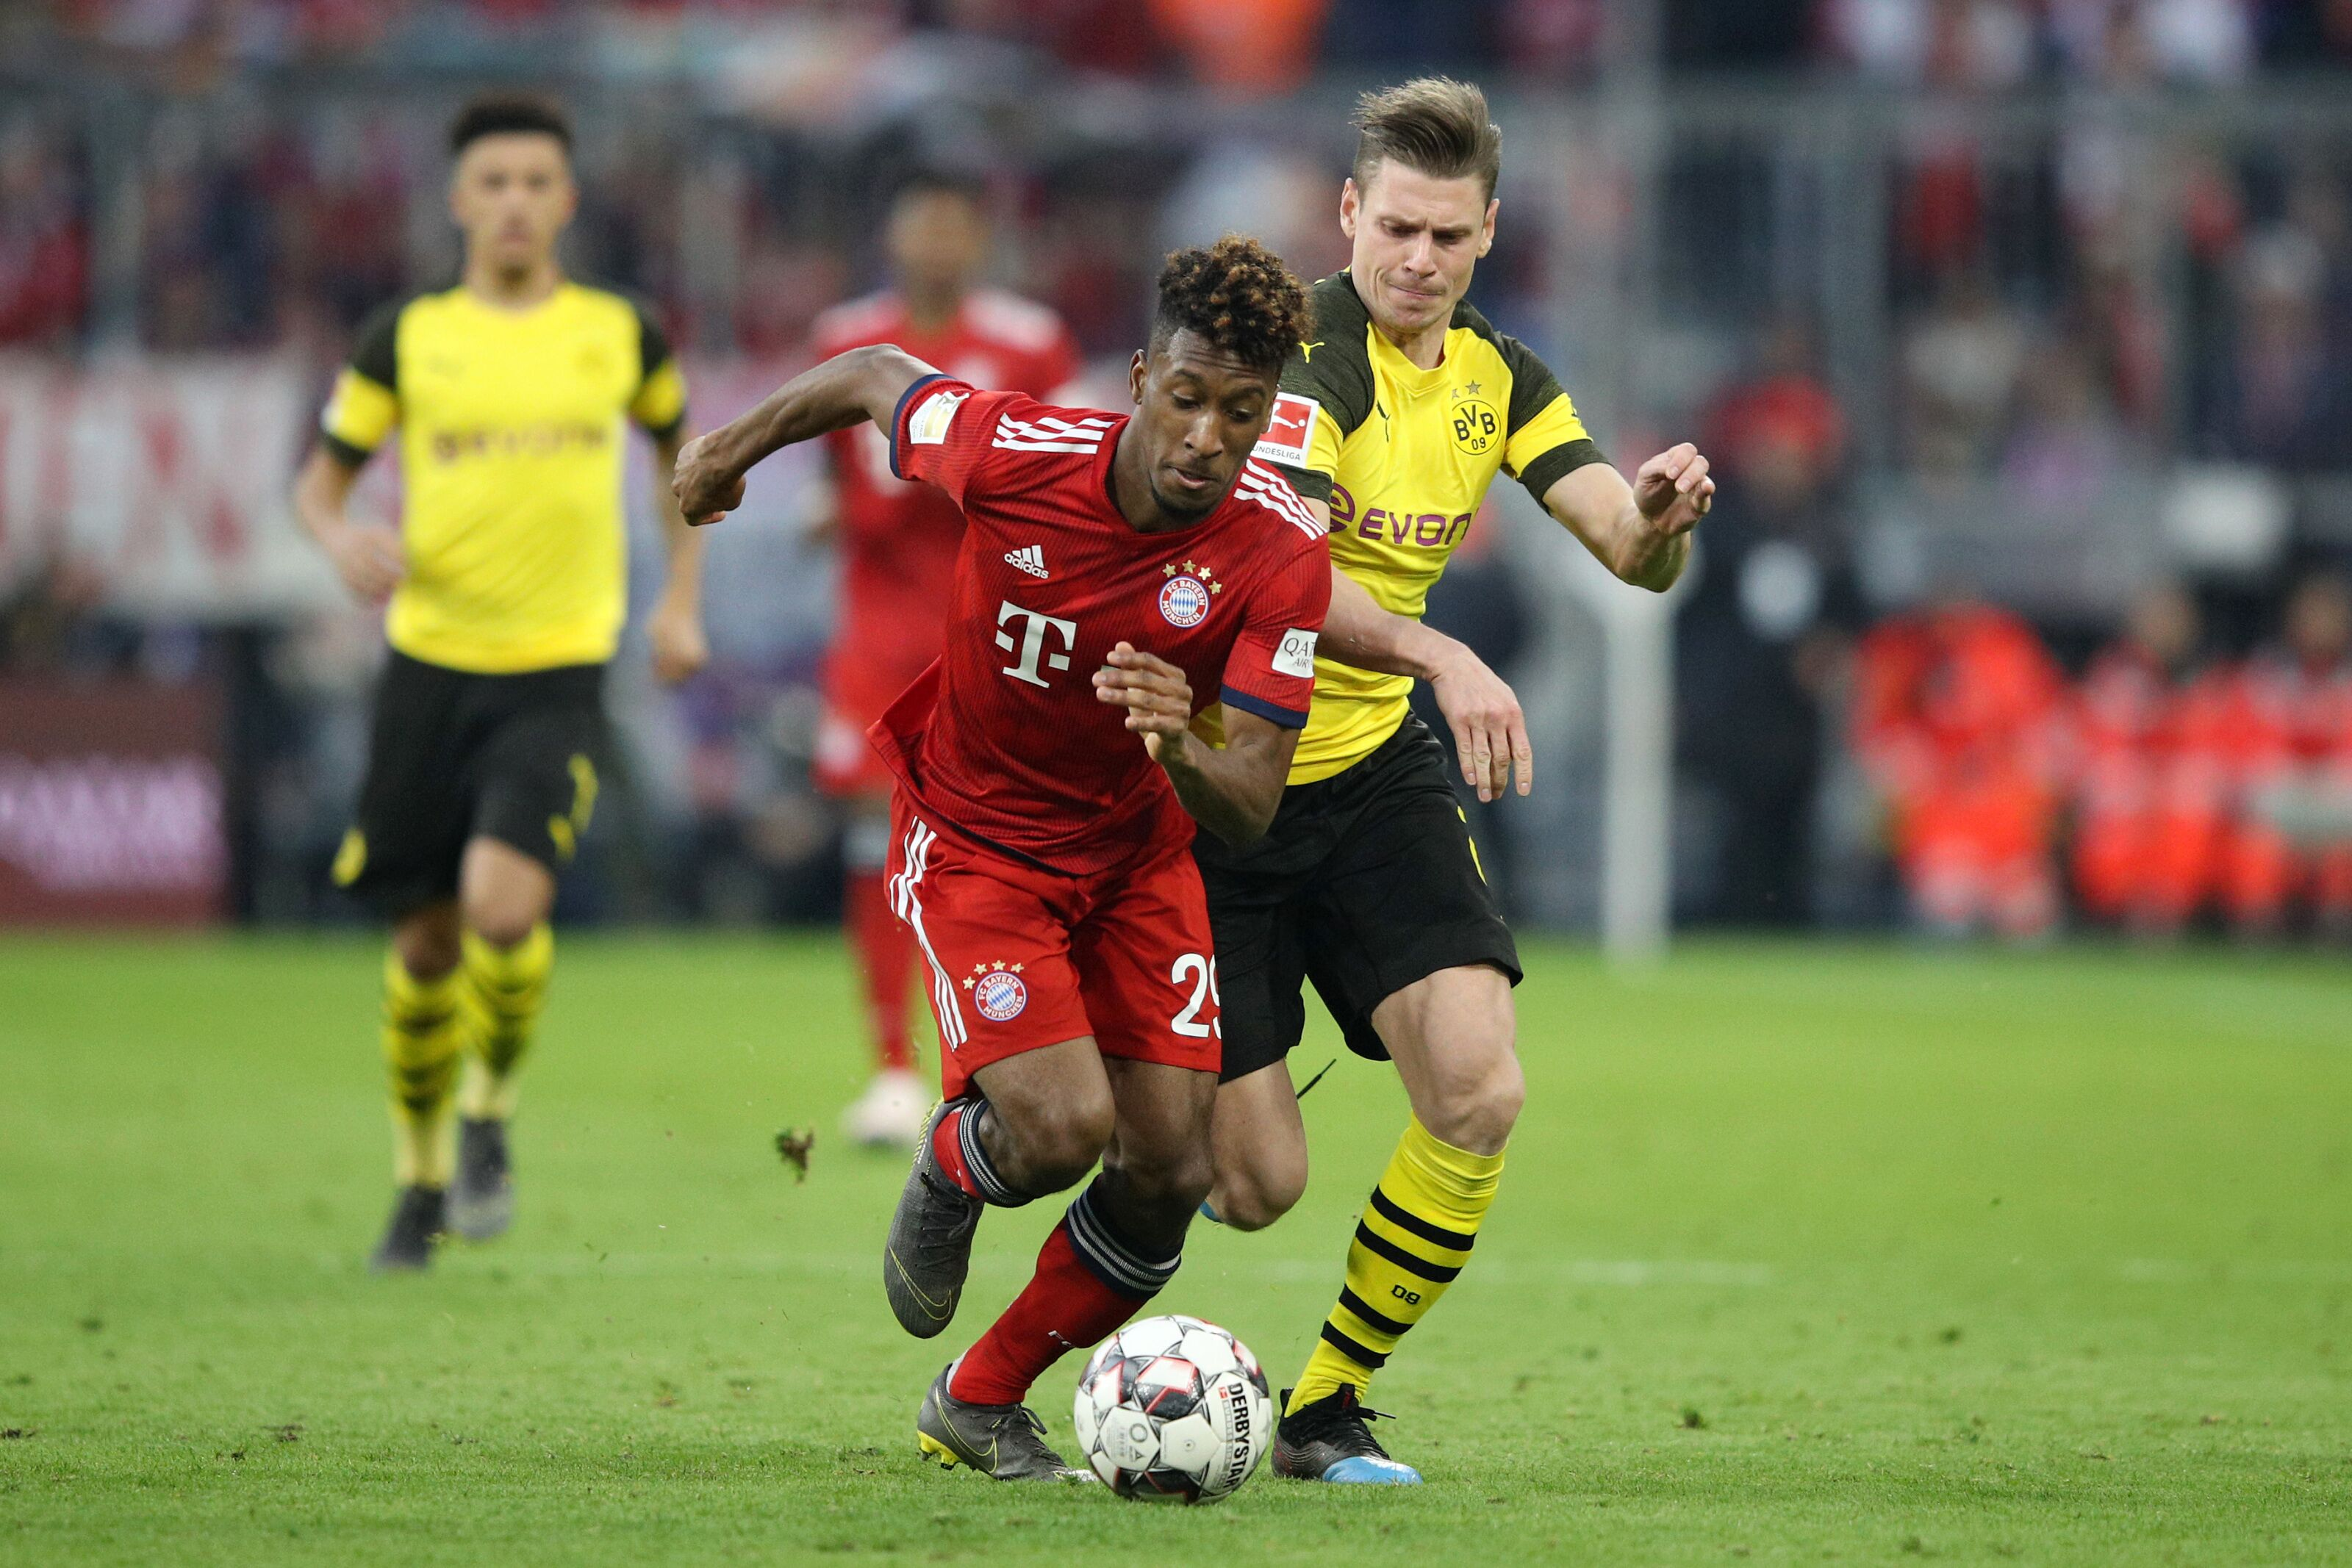 MUNICH, GERMANY - APRIL 06: Kingsley Coman of Bayern Munich is challenged by Lukasz Piszczek of Borussia Dortmund during the Bundesliga match between FC Bayern Muenchen and Borussia Dortmund at Allianz Arena on April 06, 2019 in Munich, Germany. (Photo by Adam Pretty/Bongarts/Getty Images)